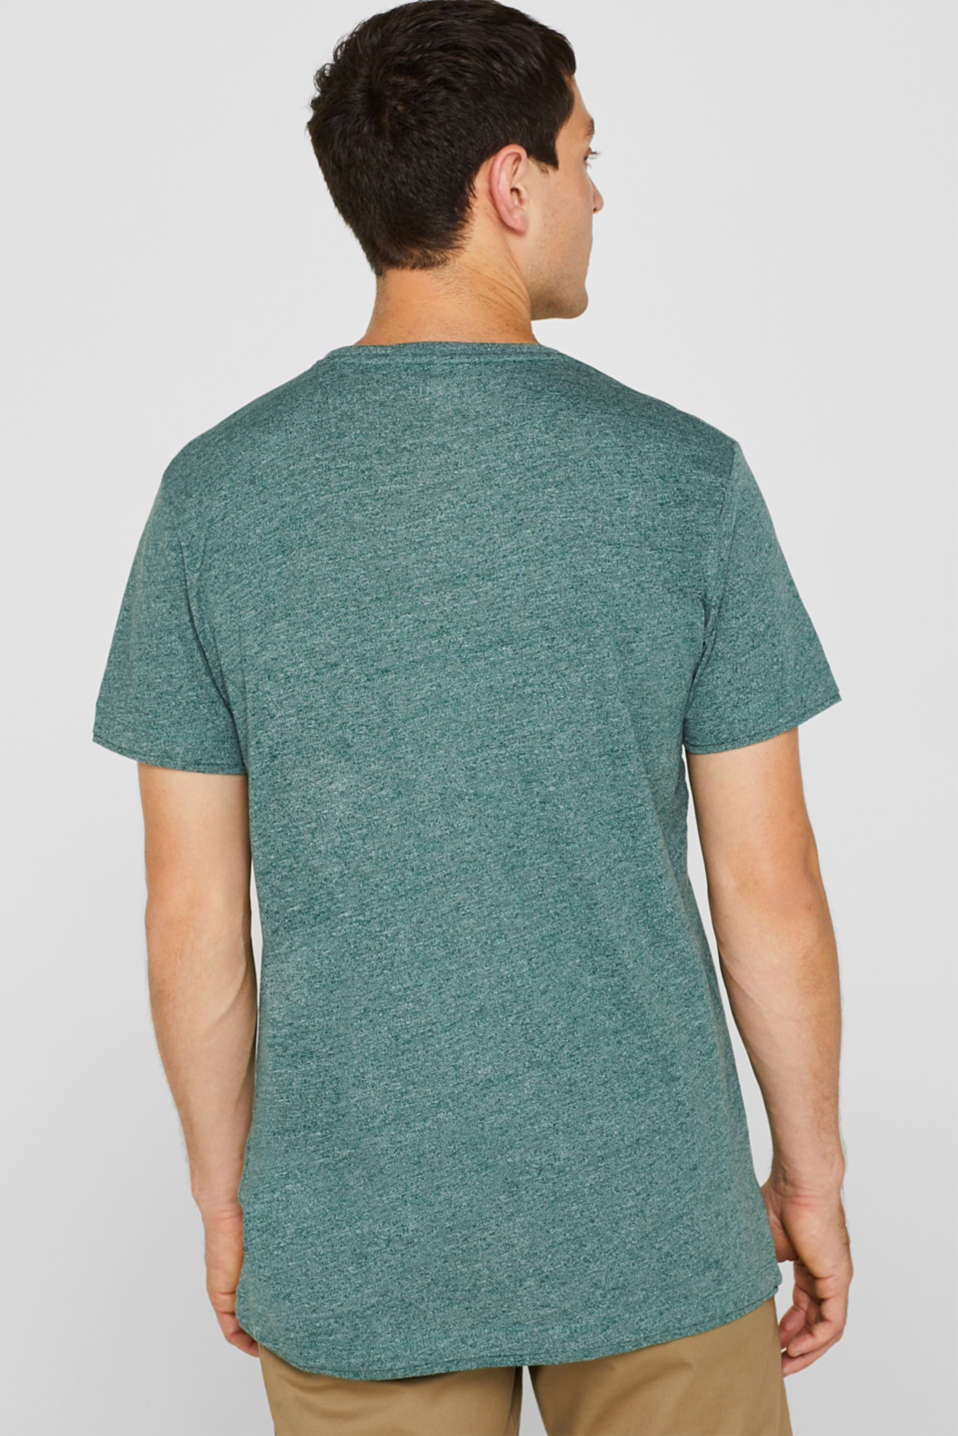 Jersey T-shirt in blended cotton, DUSTY GREEN, detail image number 3